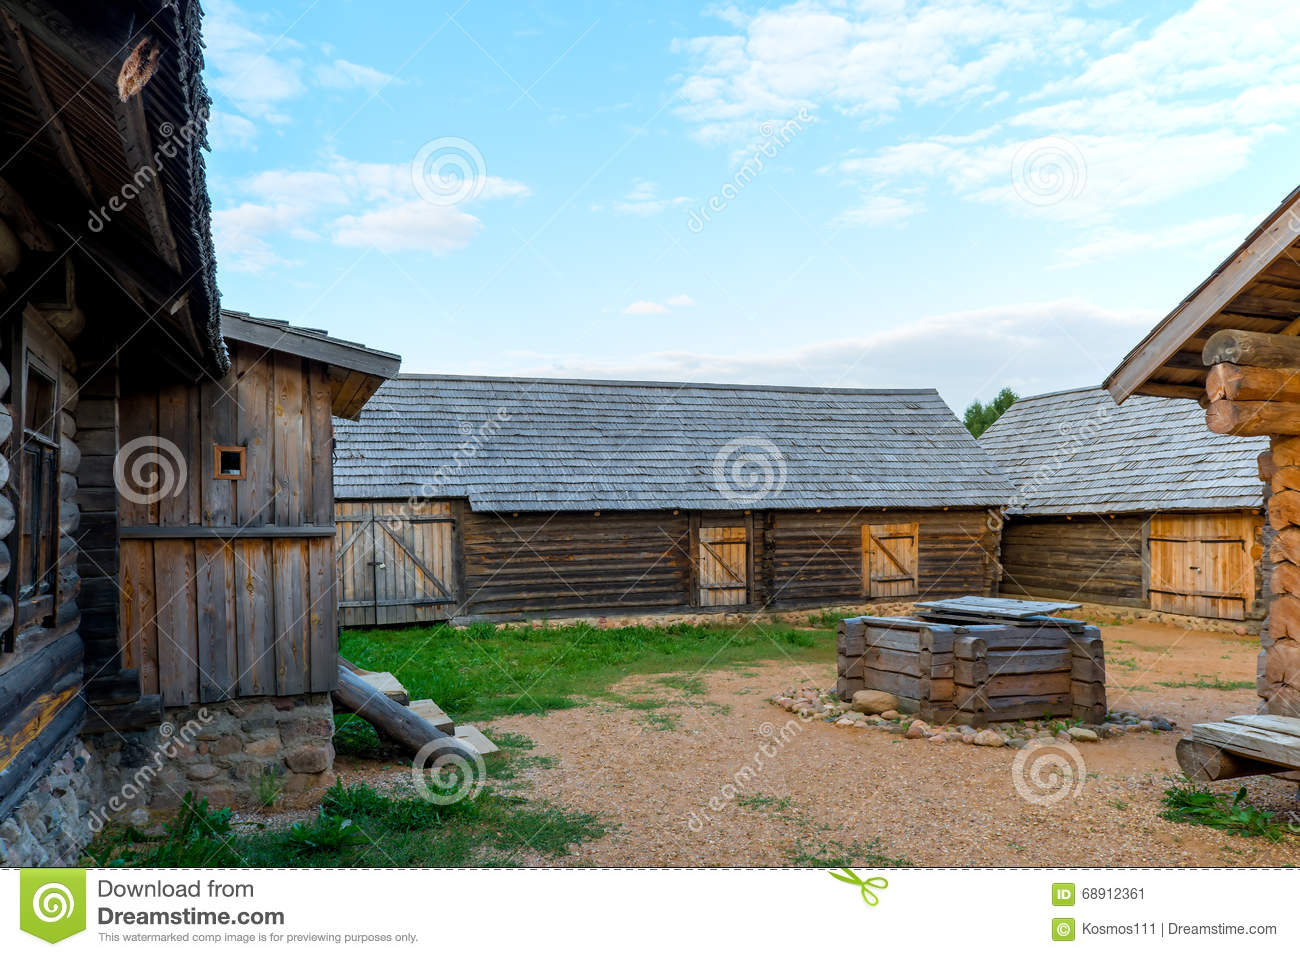 The Inner Courtyard Of The Rural House Stock Photo.